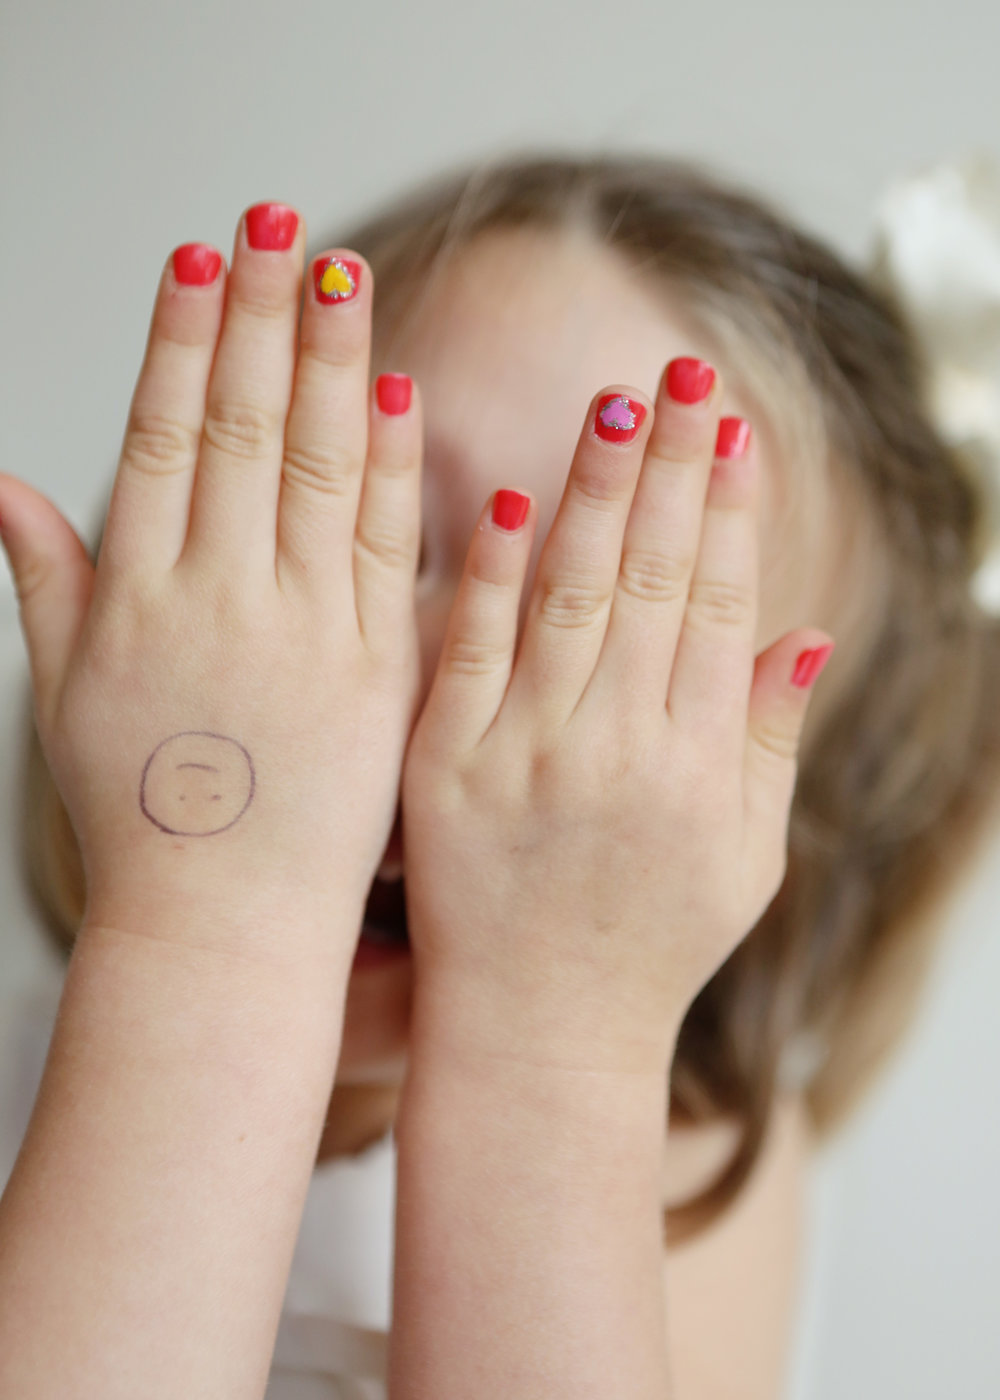 NJ and NYC based lifestyle photographer | Jennifer Lavelle Photography |  children and families, newborn, lifestyle, interiors, food and travel.  Little girl's painted nails.